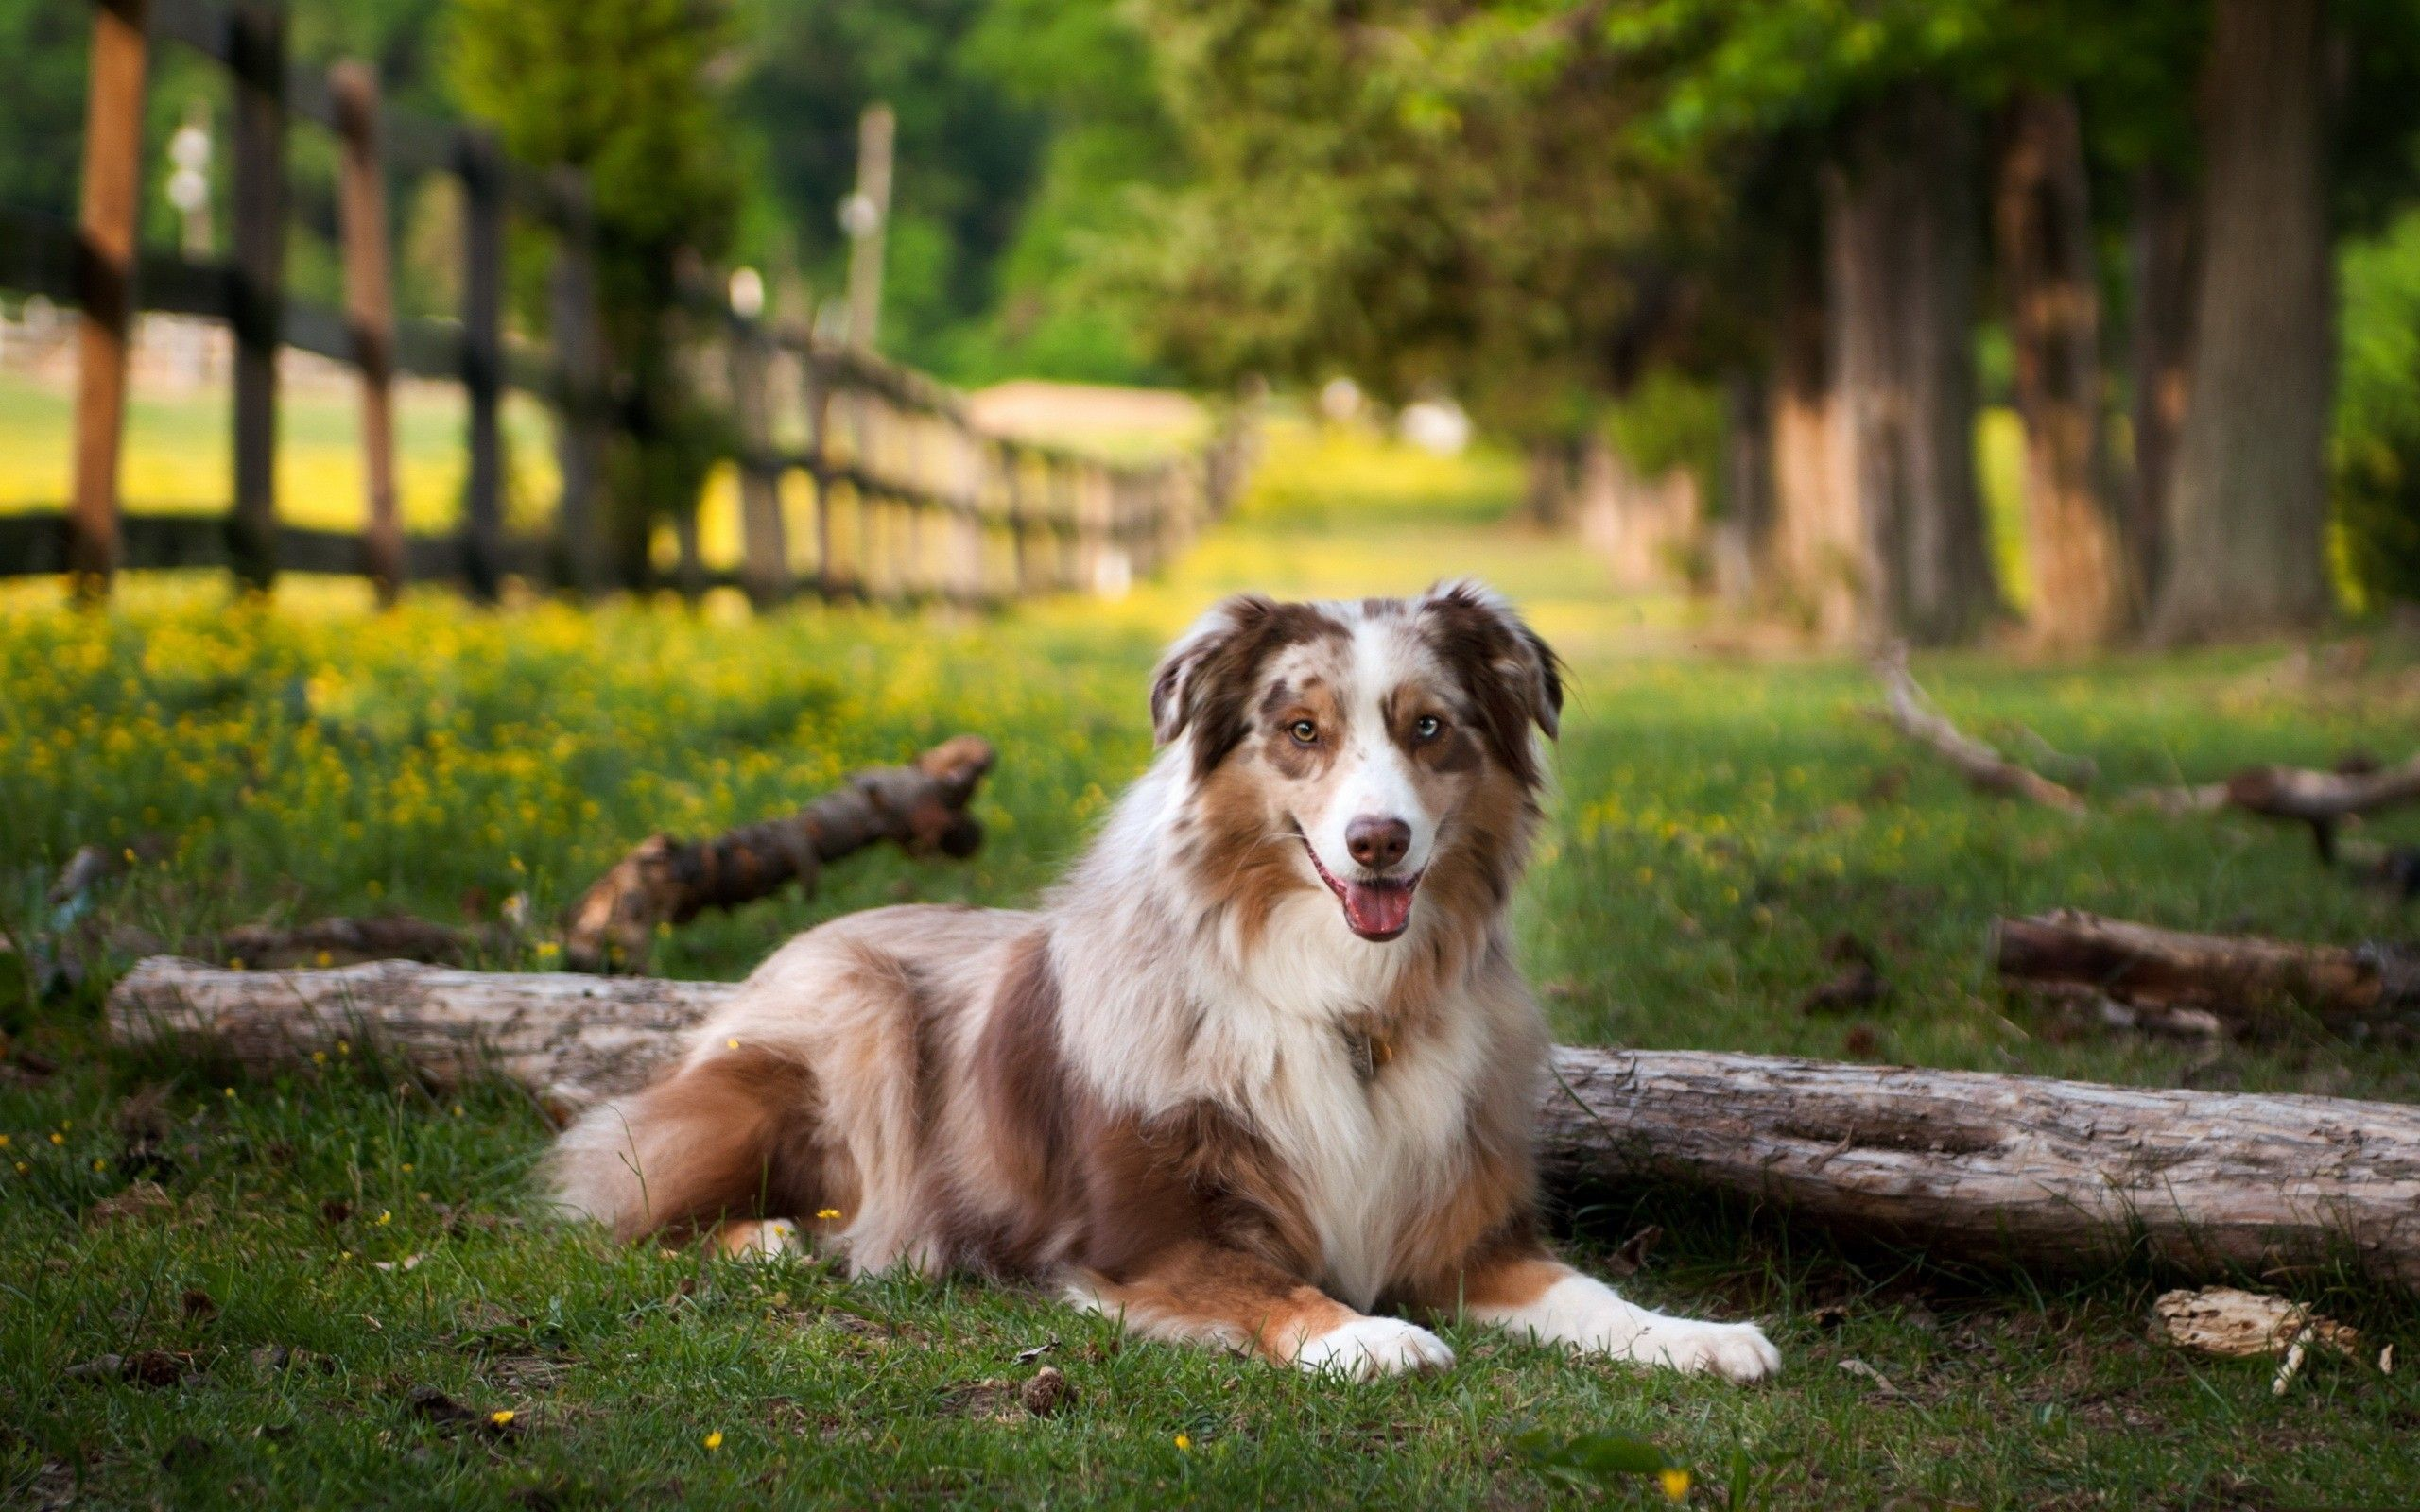 Buy Kci Registered Puppies Dogs For Sale In India Dogs For Adoption In India Dogs Price In India Dogs And Pup Aussie Dogs Dog Pictures Australian Shepherd